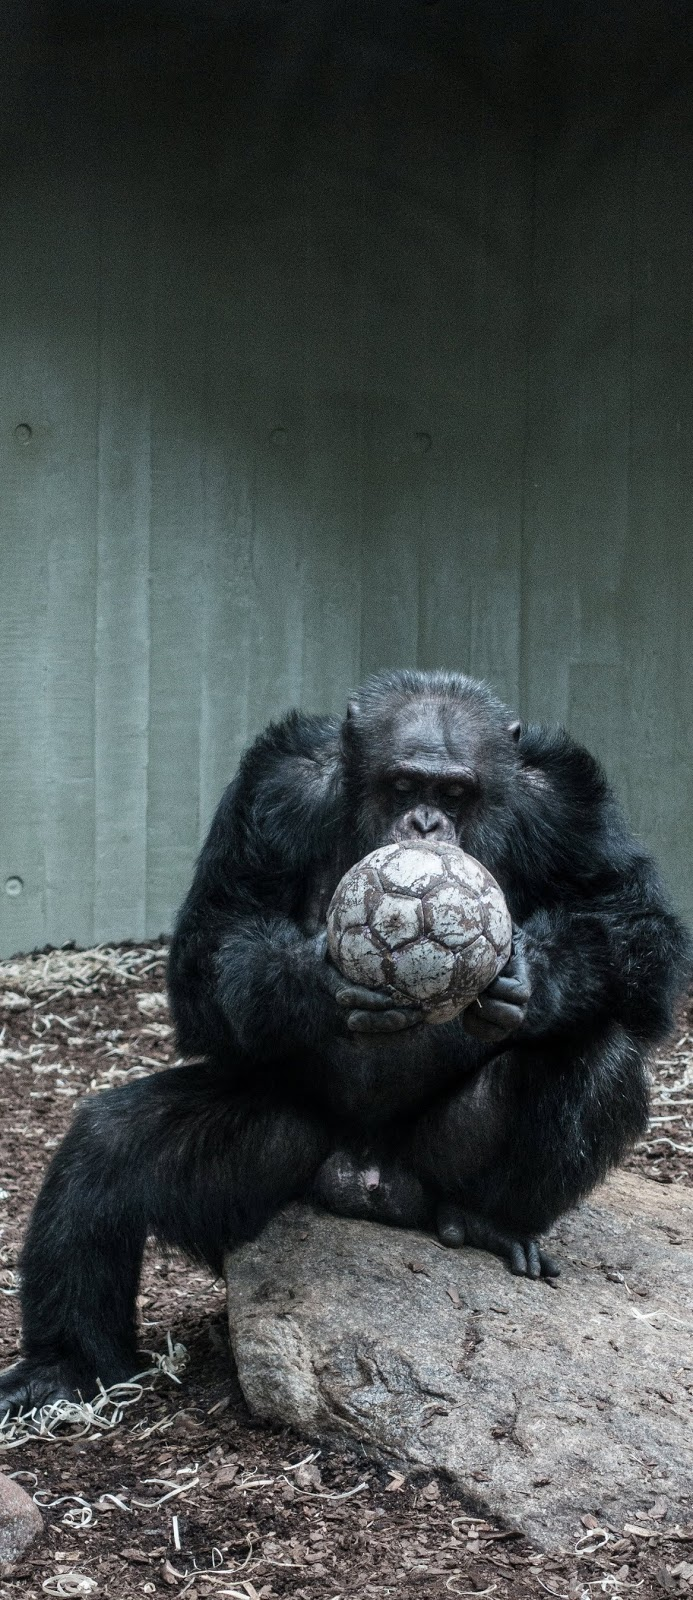 What football means to a gorilla.